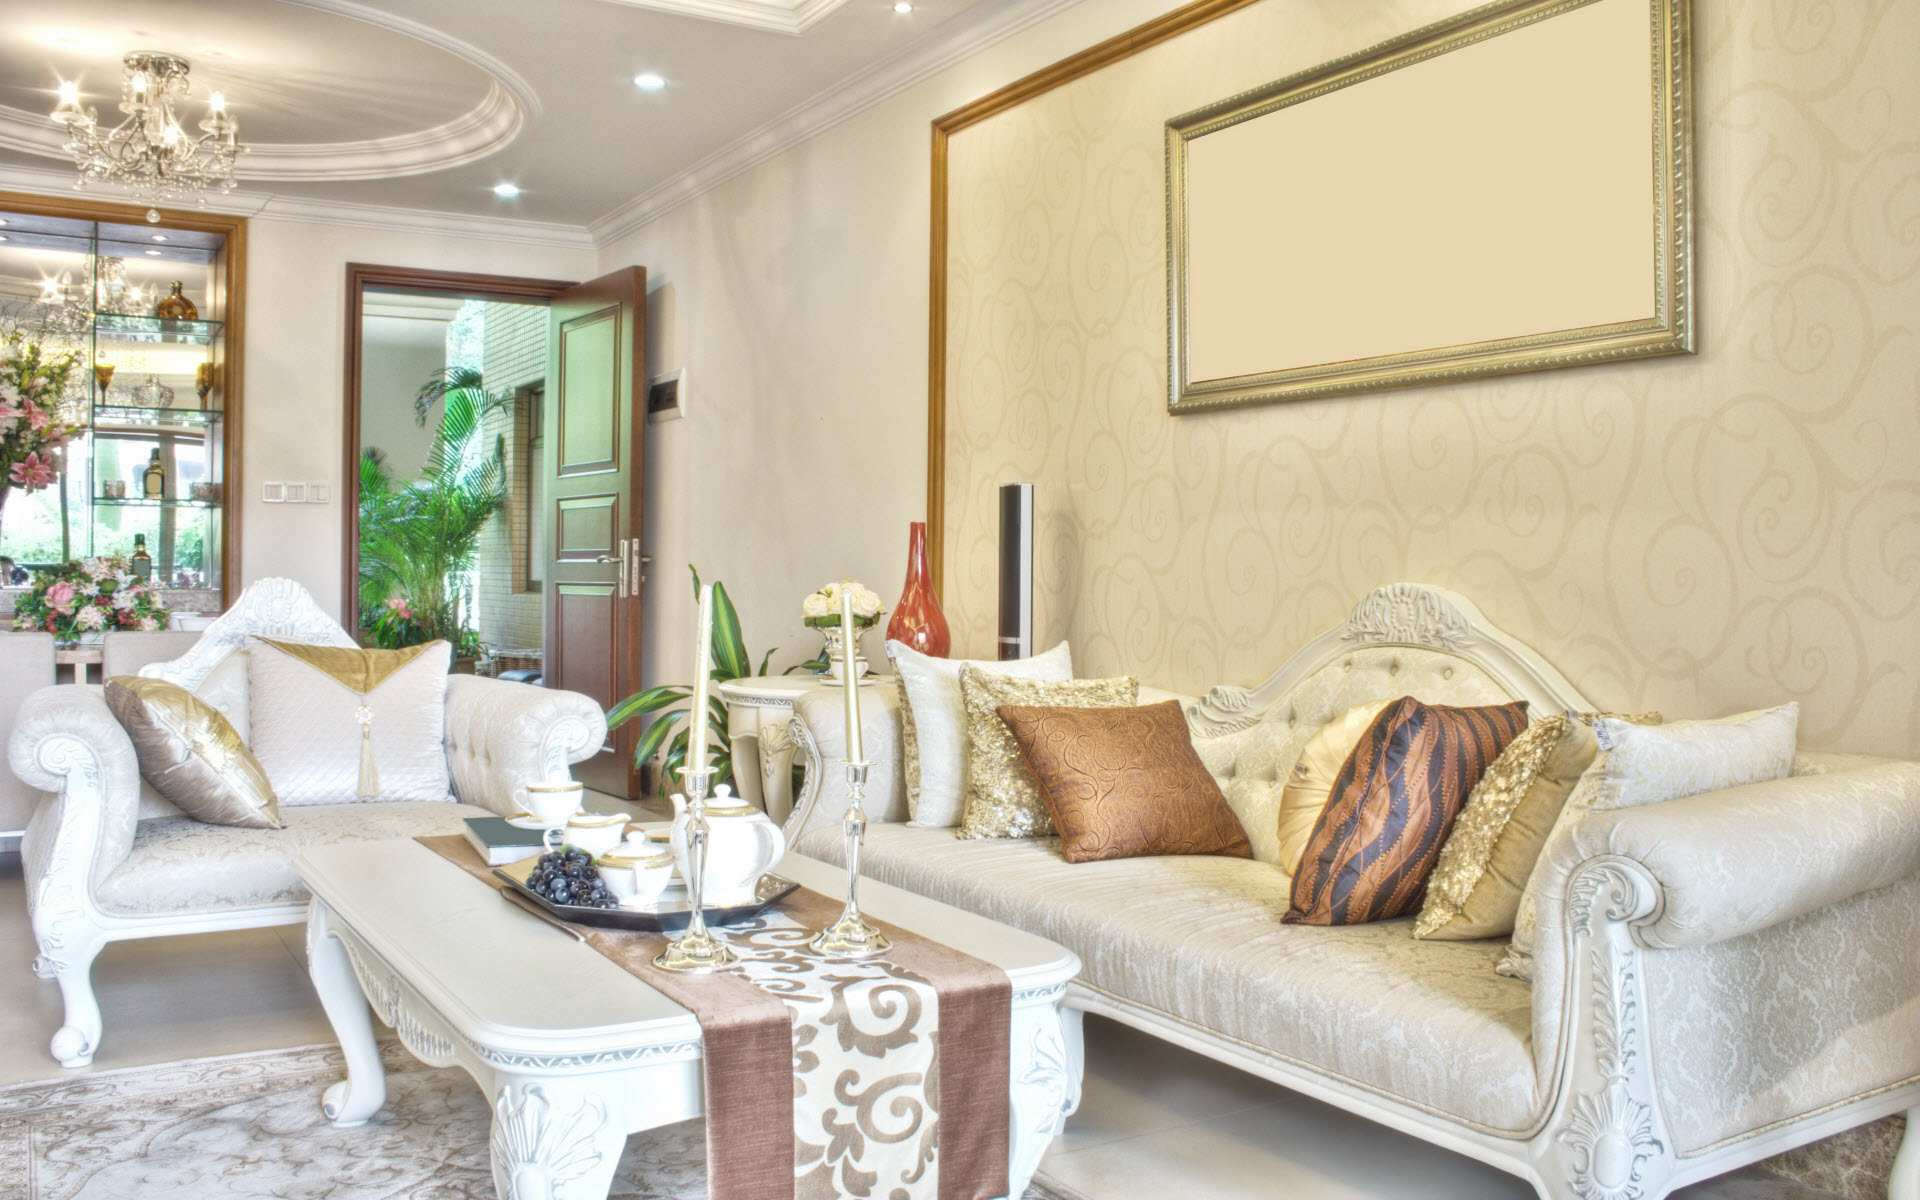 decorating with white furniture decorating living room with white furniture photo 6 bedroomlicious shabby chic bedrooms